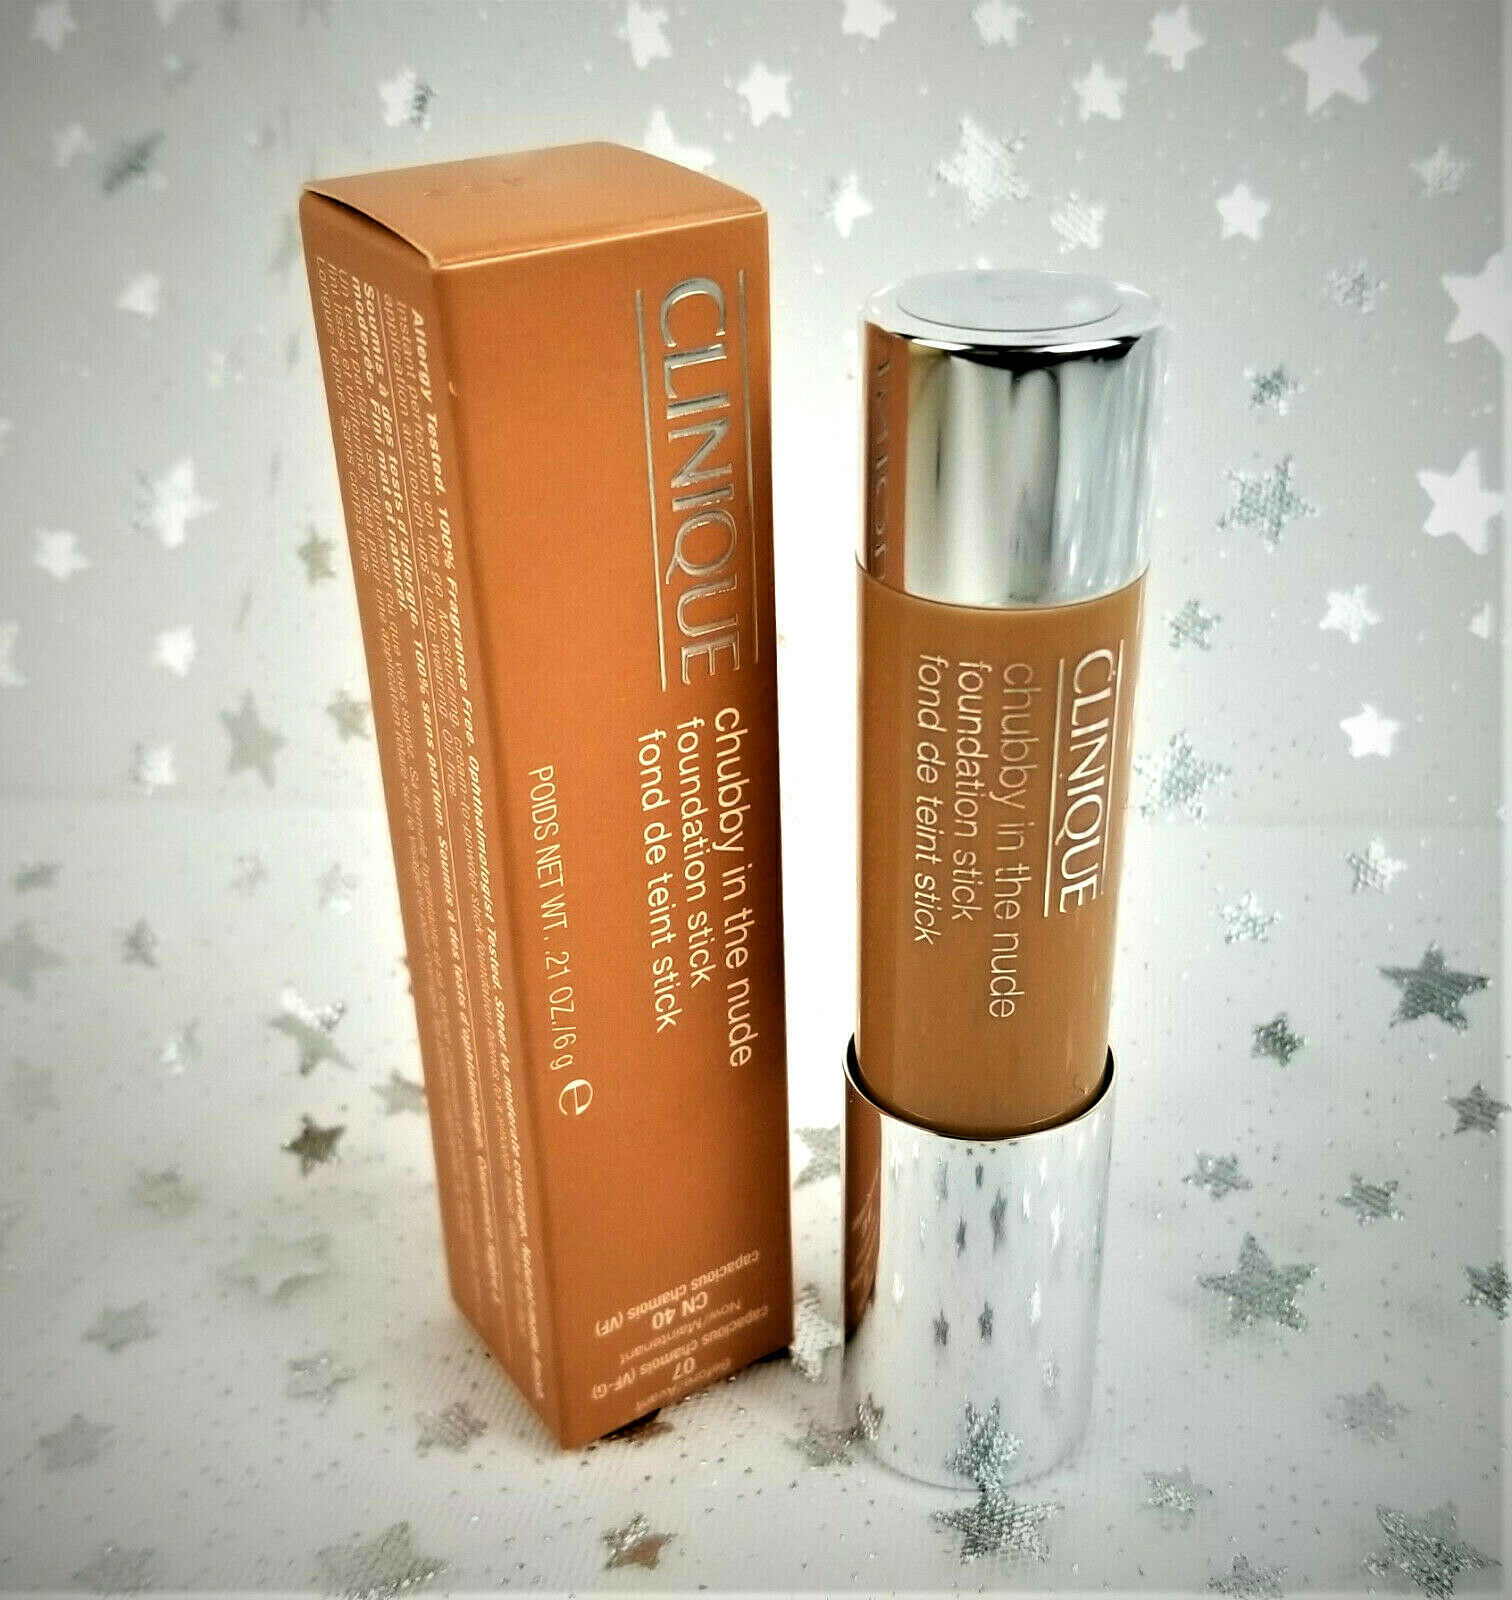 Primary image for CLINIQUE chubby in the nude foundation stick CN 40 / 07 - NEW in Box .21 oz / 6g